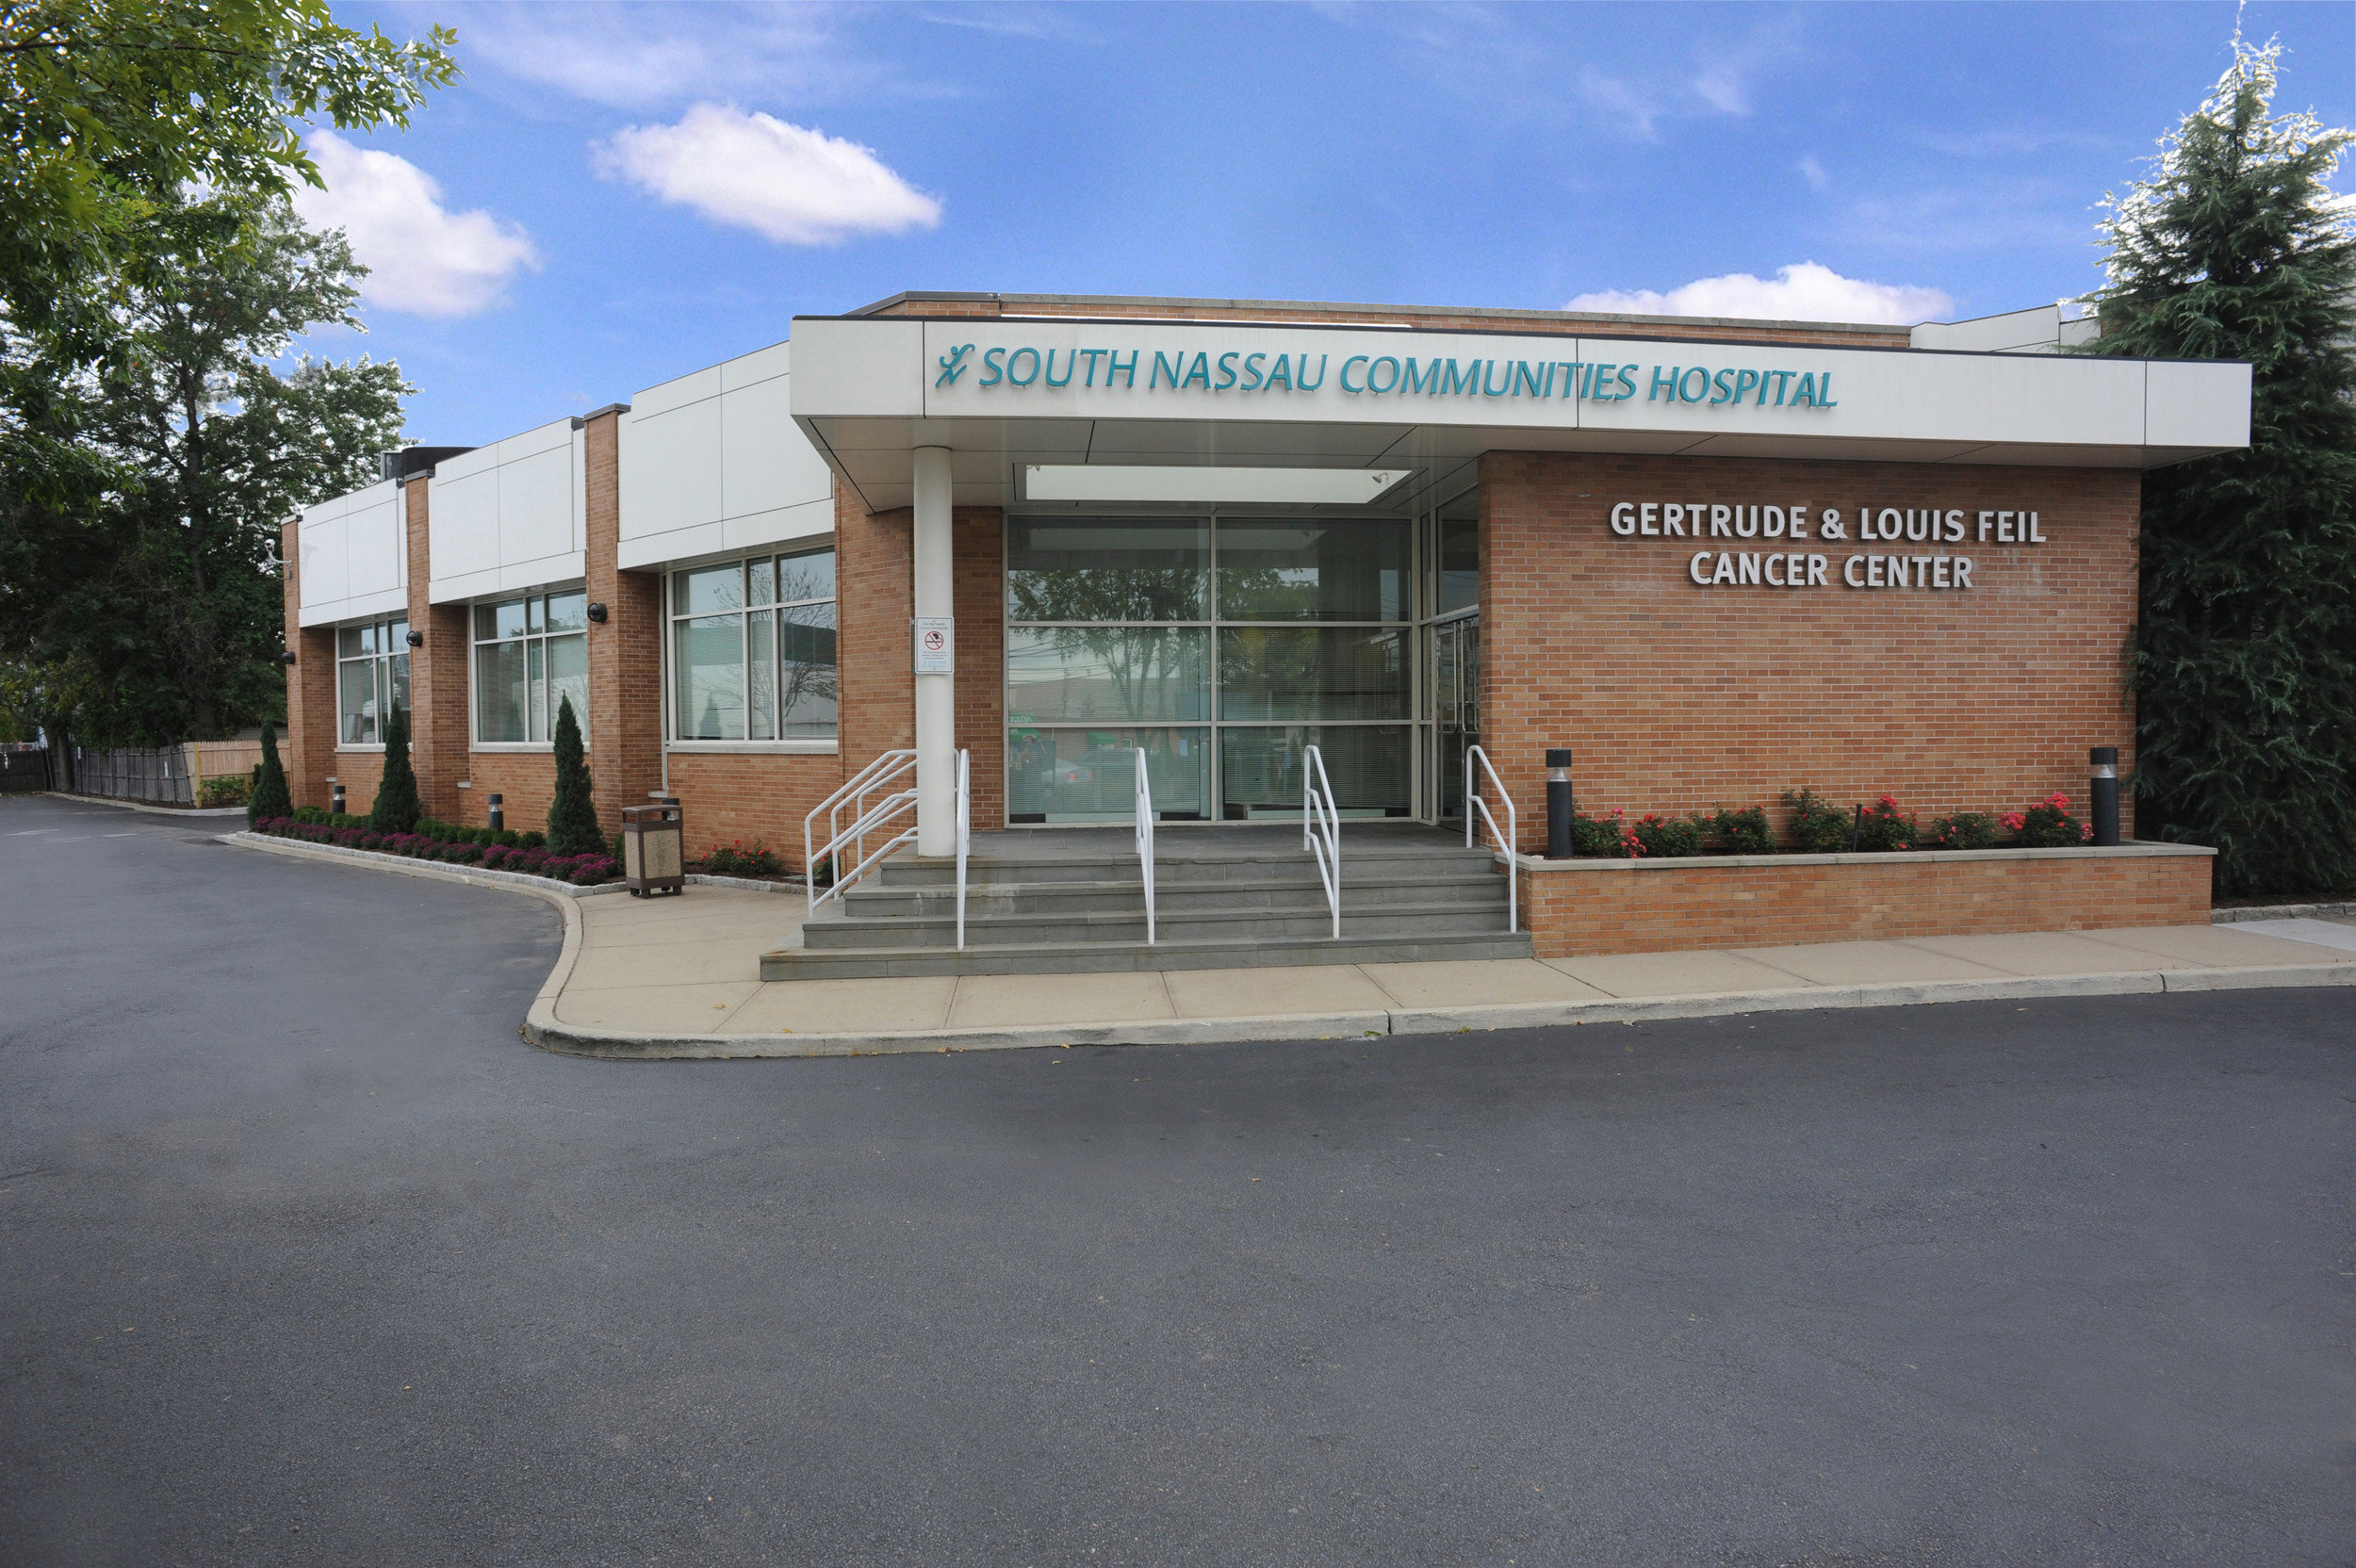 The Feil family donated $3 million to help expand the Gertrude & Louis Feil Cancer Center in Valley Stream.